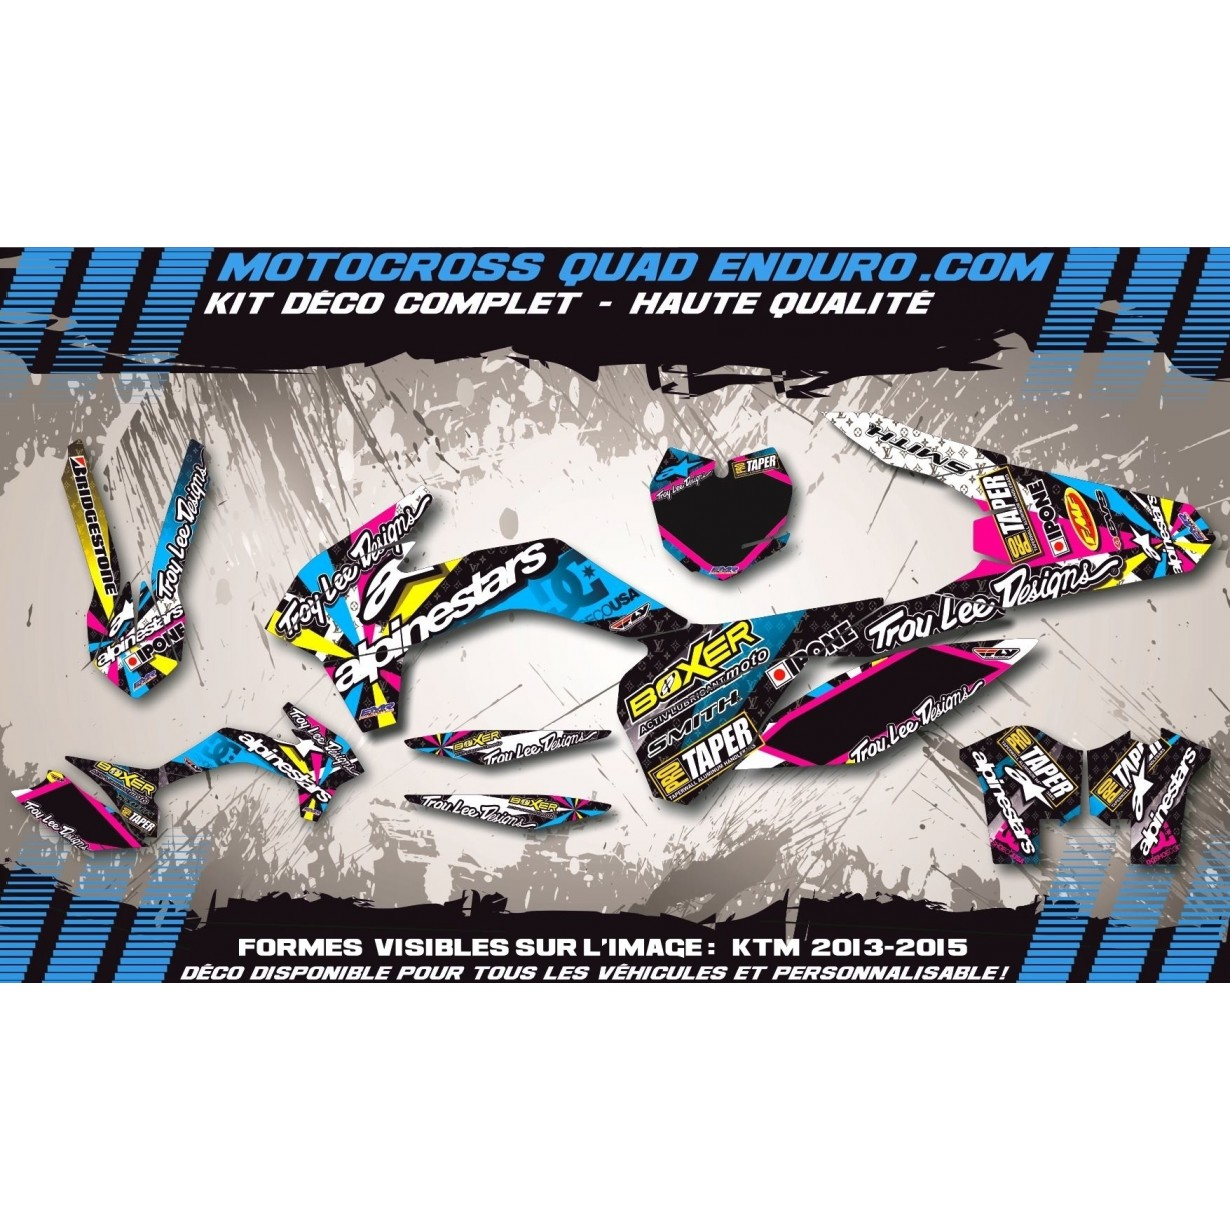 KIT DÉCO Perso 450 YZF 10-14 ALPINESTARS MA4A